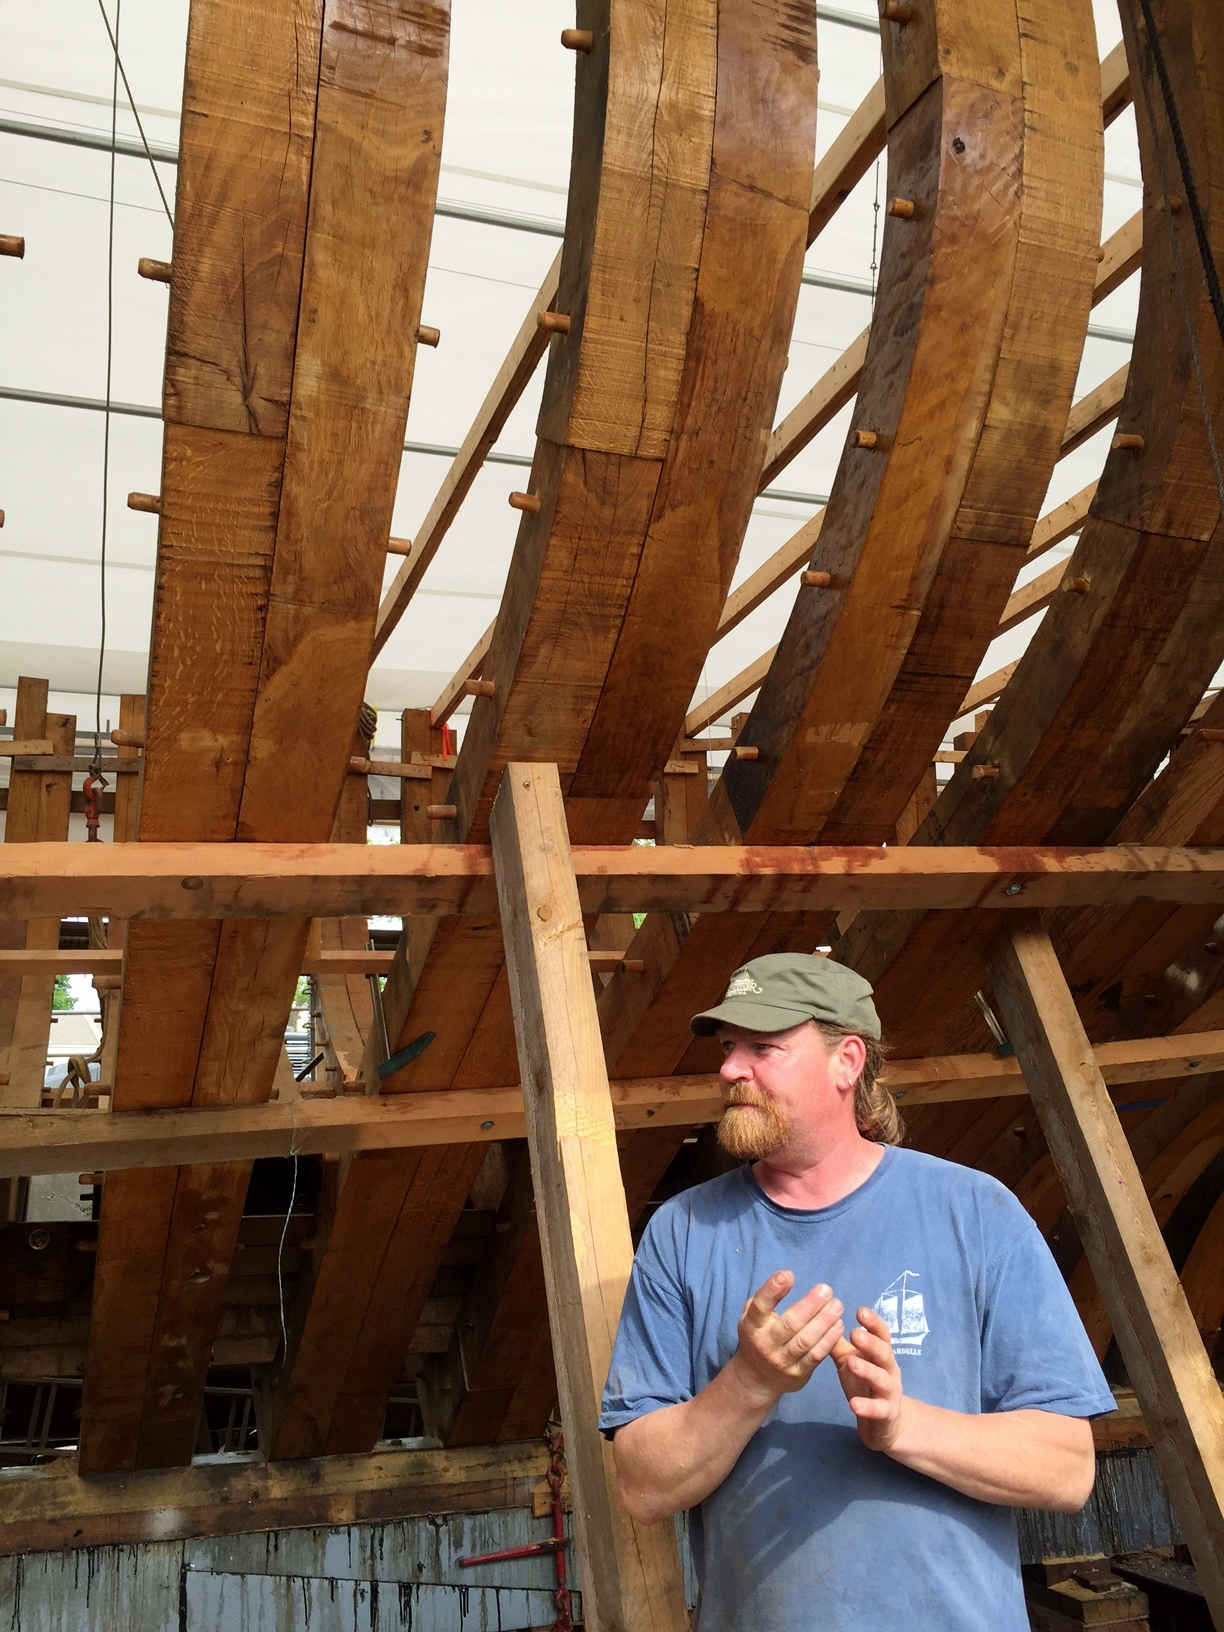 The Schooner Ernestina-Morrissey Restoration at the Boothbay Harbor Shipyard